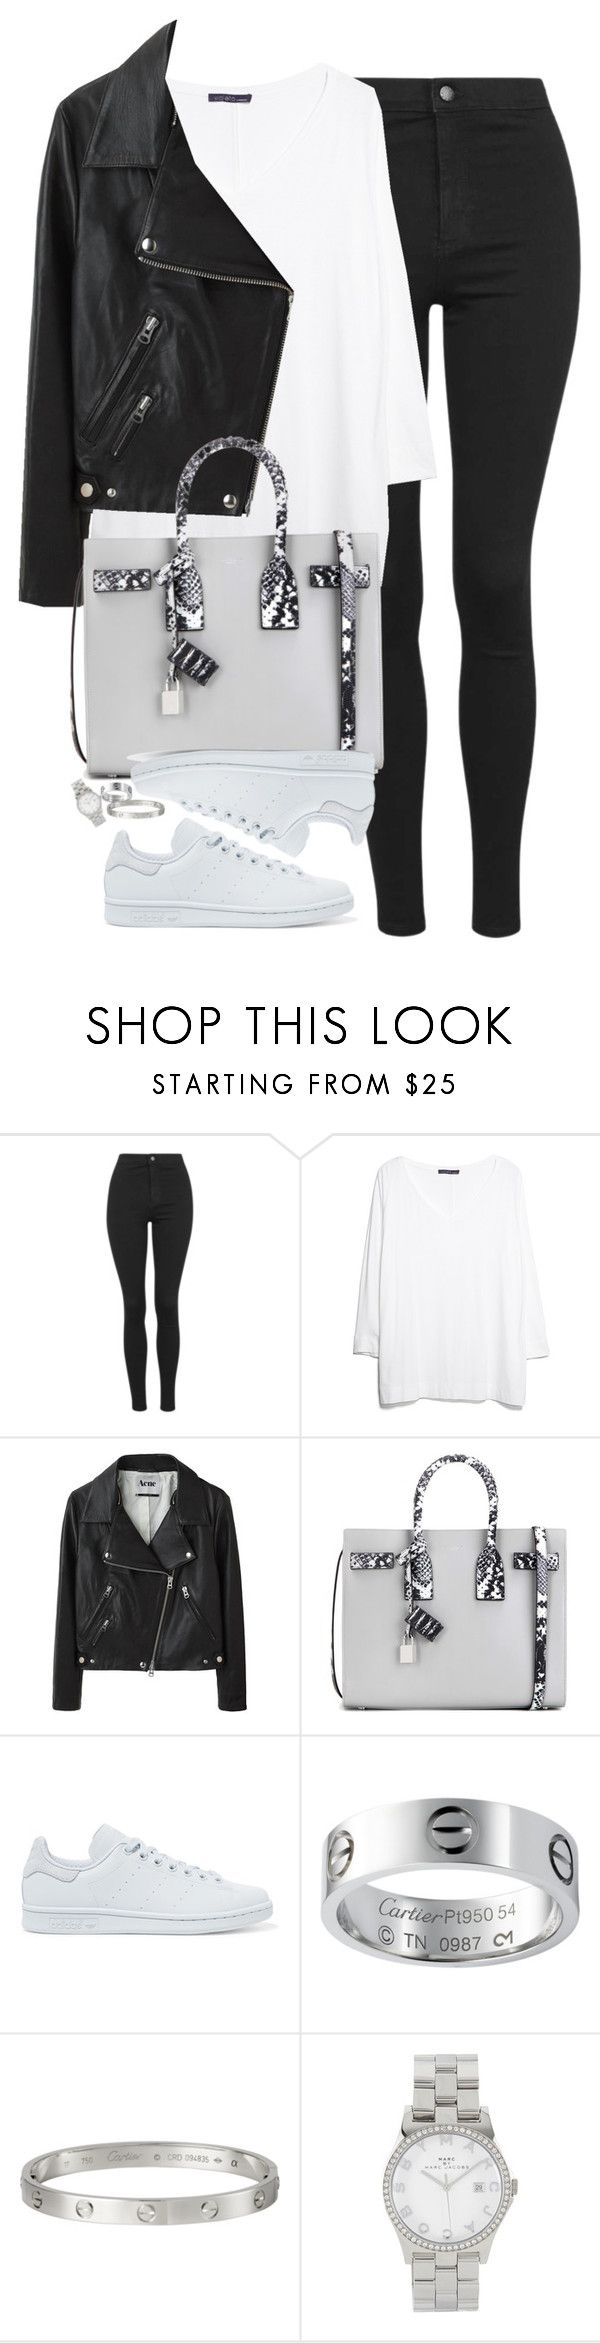 """""""Untitled #1218"""" by lovetaytay ❤ liked on Polyvore featuring Topshop, MANGO, Acne Studios, Yves Saint Laurent, adidas Originals and Marc Jacobs"""